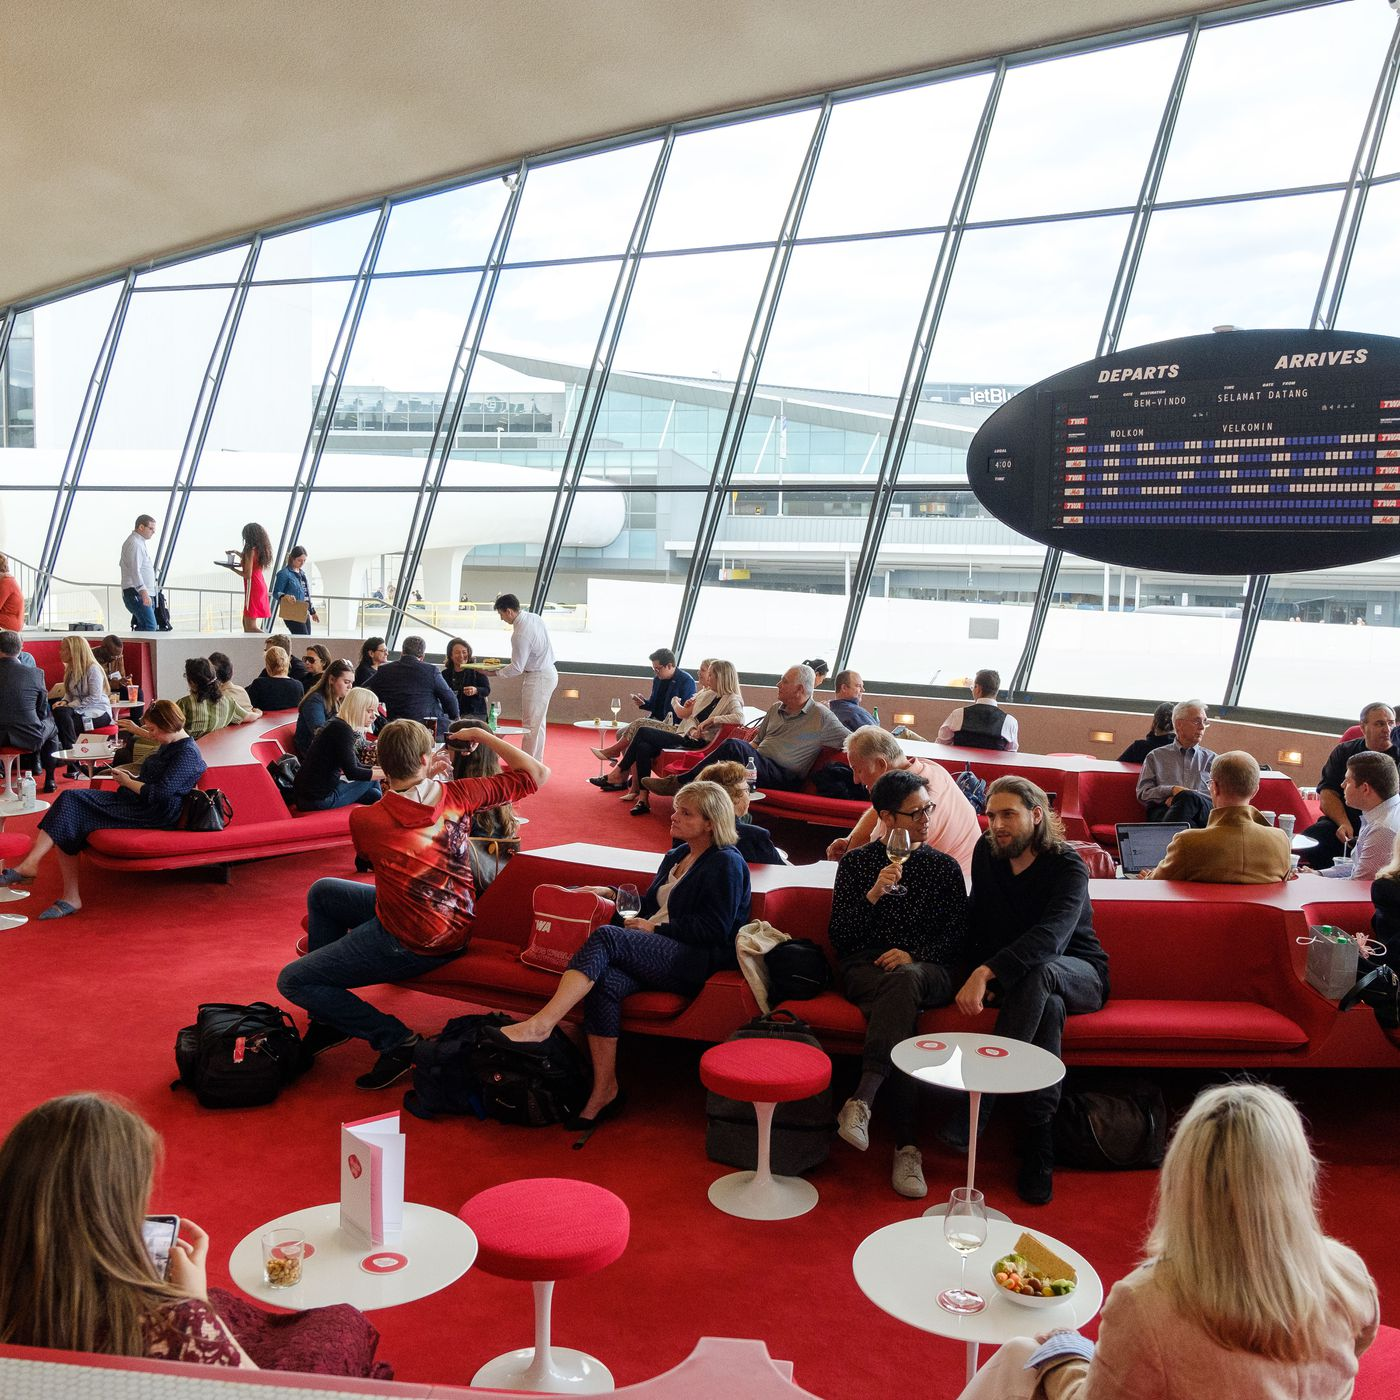 Where to Eat at John F. Kennedy Airport (JFK) - Eater NY